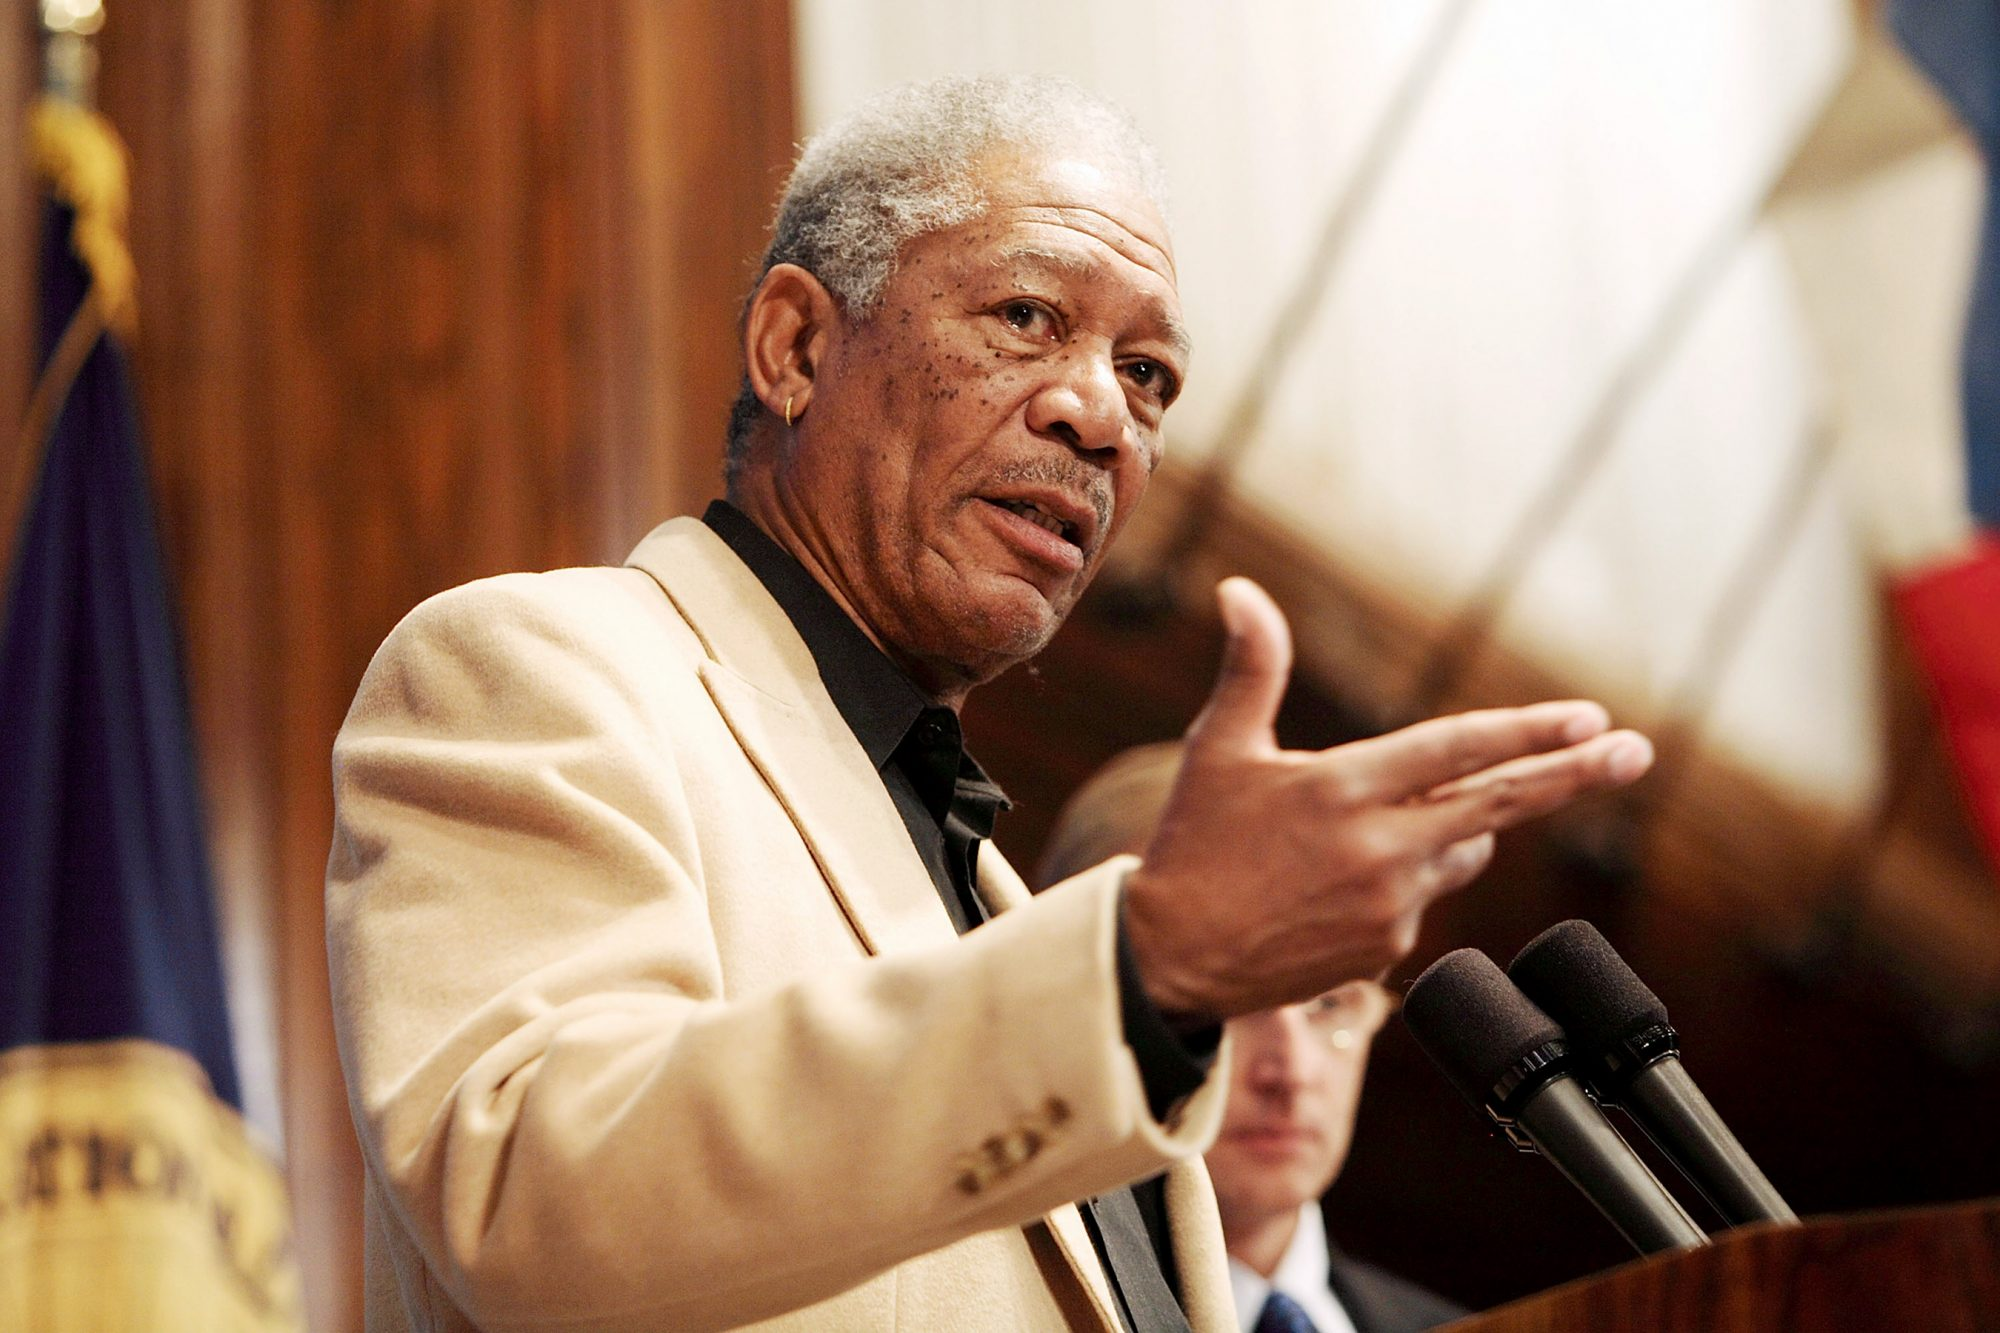 The National Press Club Newsmaker Luncheon Program with Morgan Freeman's Grenada Relief Fund